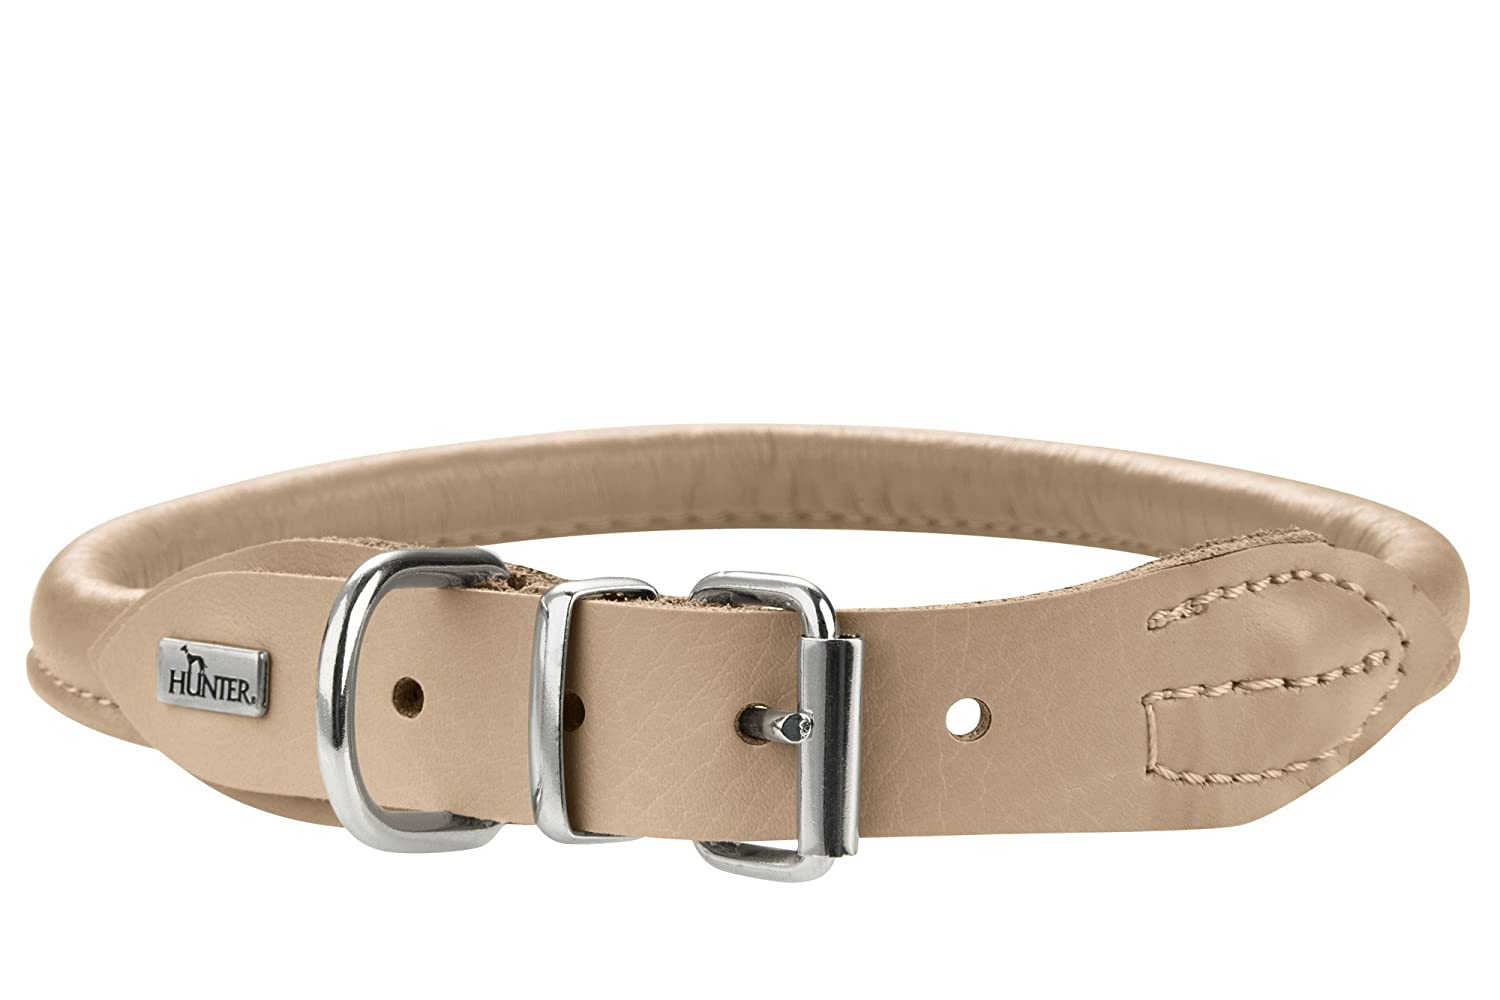 Hunter HT61170 Round & Soft Elk Leather Collar, One Size